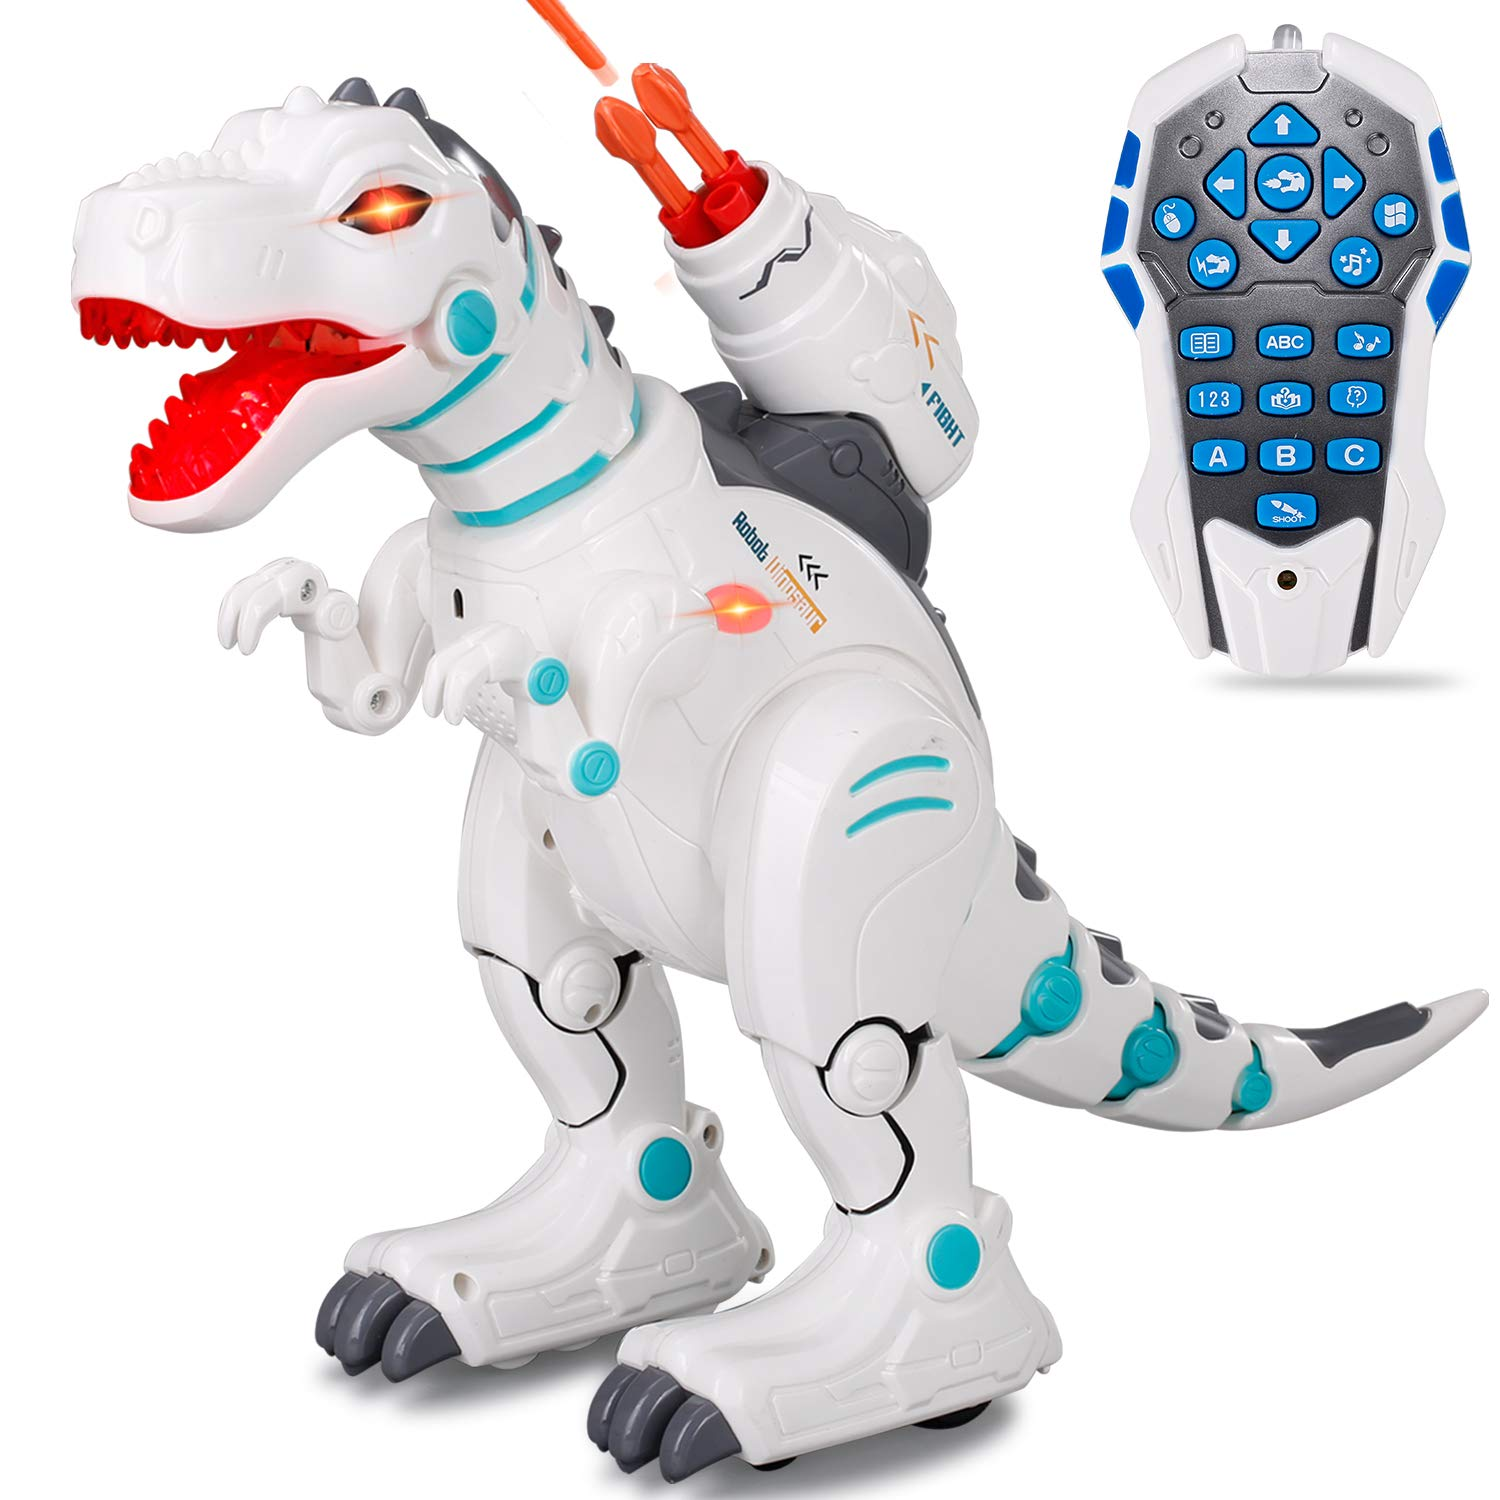 JIEQI Remote Control Dinosaur Robot for Kids,Intelligent Robot Toys Sings Dances Sprays Mist Launches Missiles Walking Fight Models Electronic RC Robot Toys for Boys Girls Gift